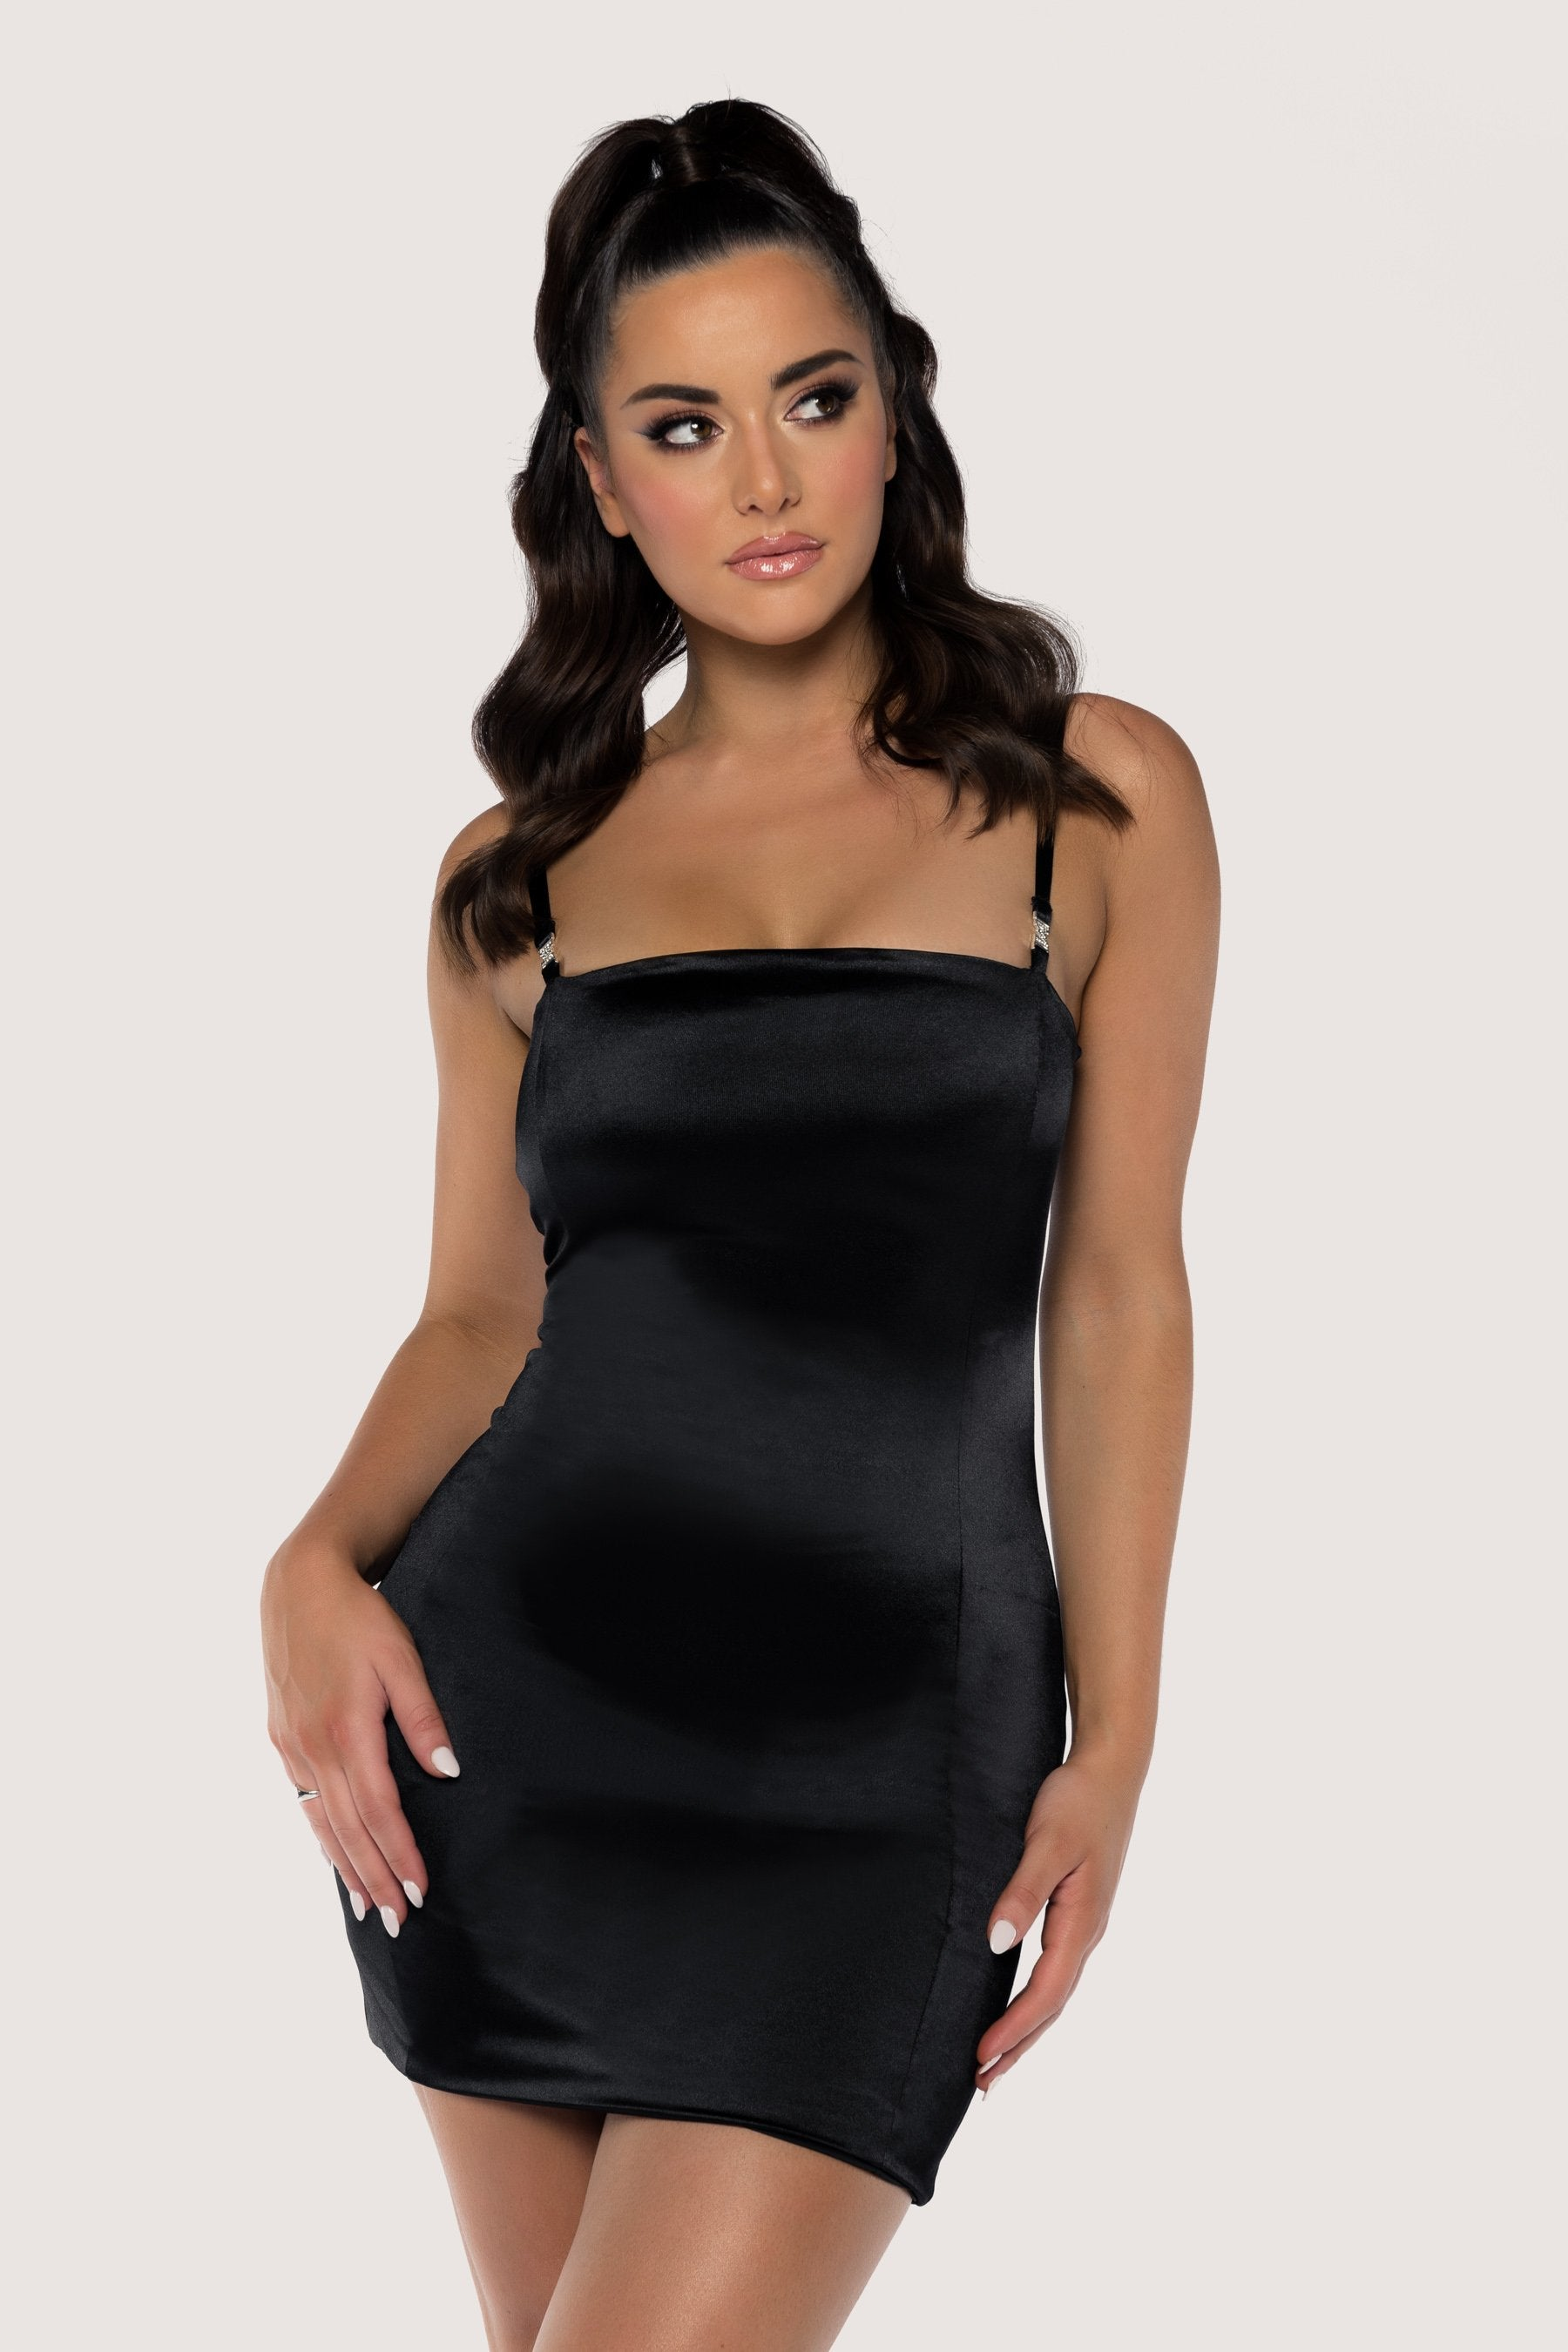 Black bodycon dress thin straps and boots